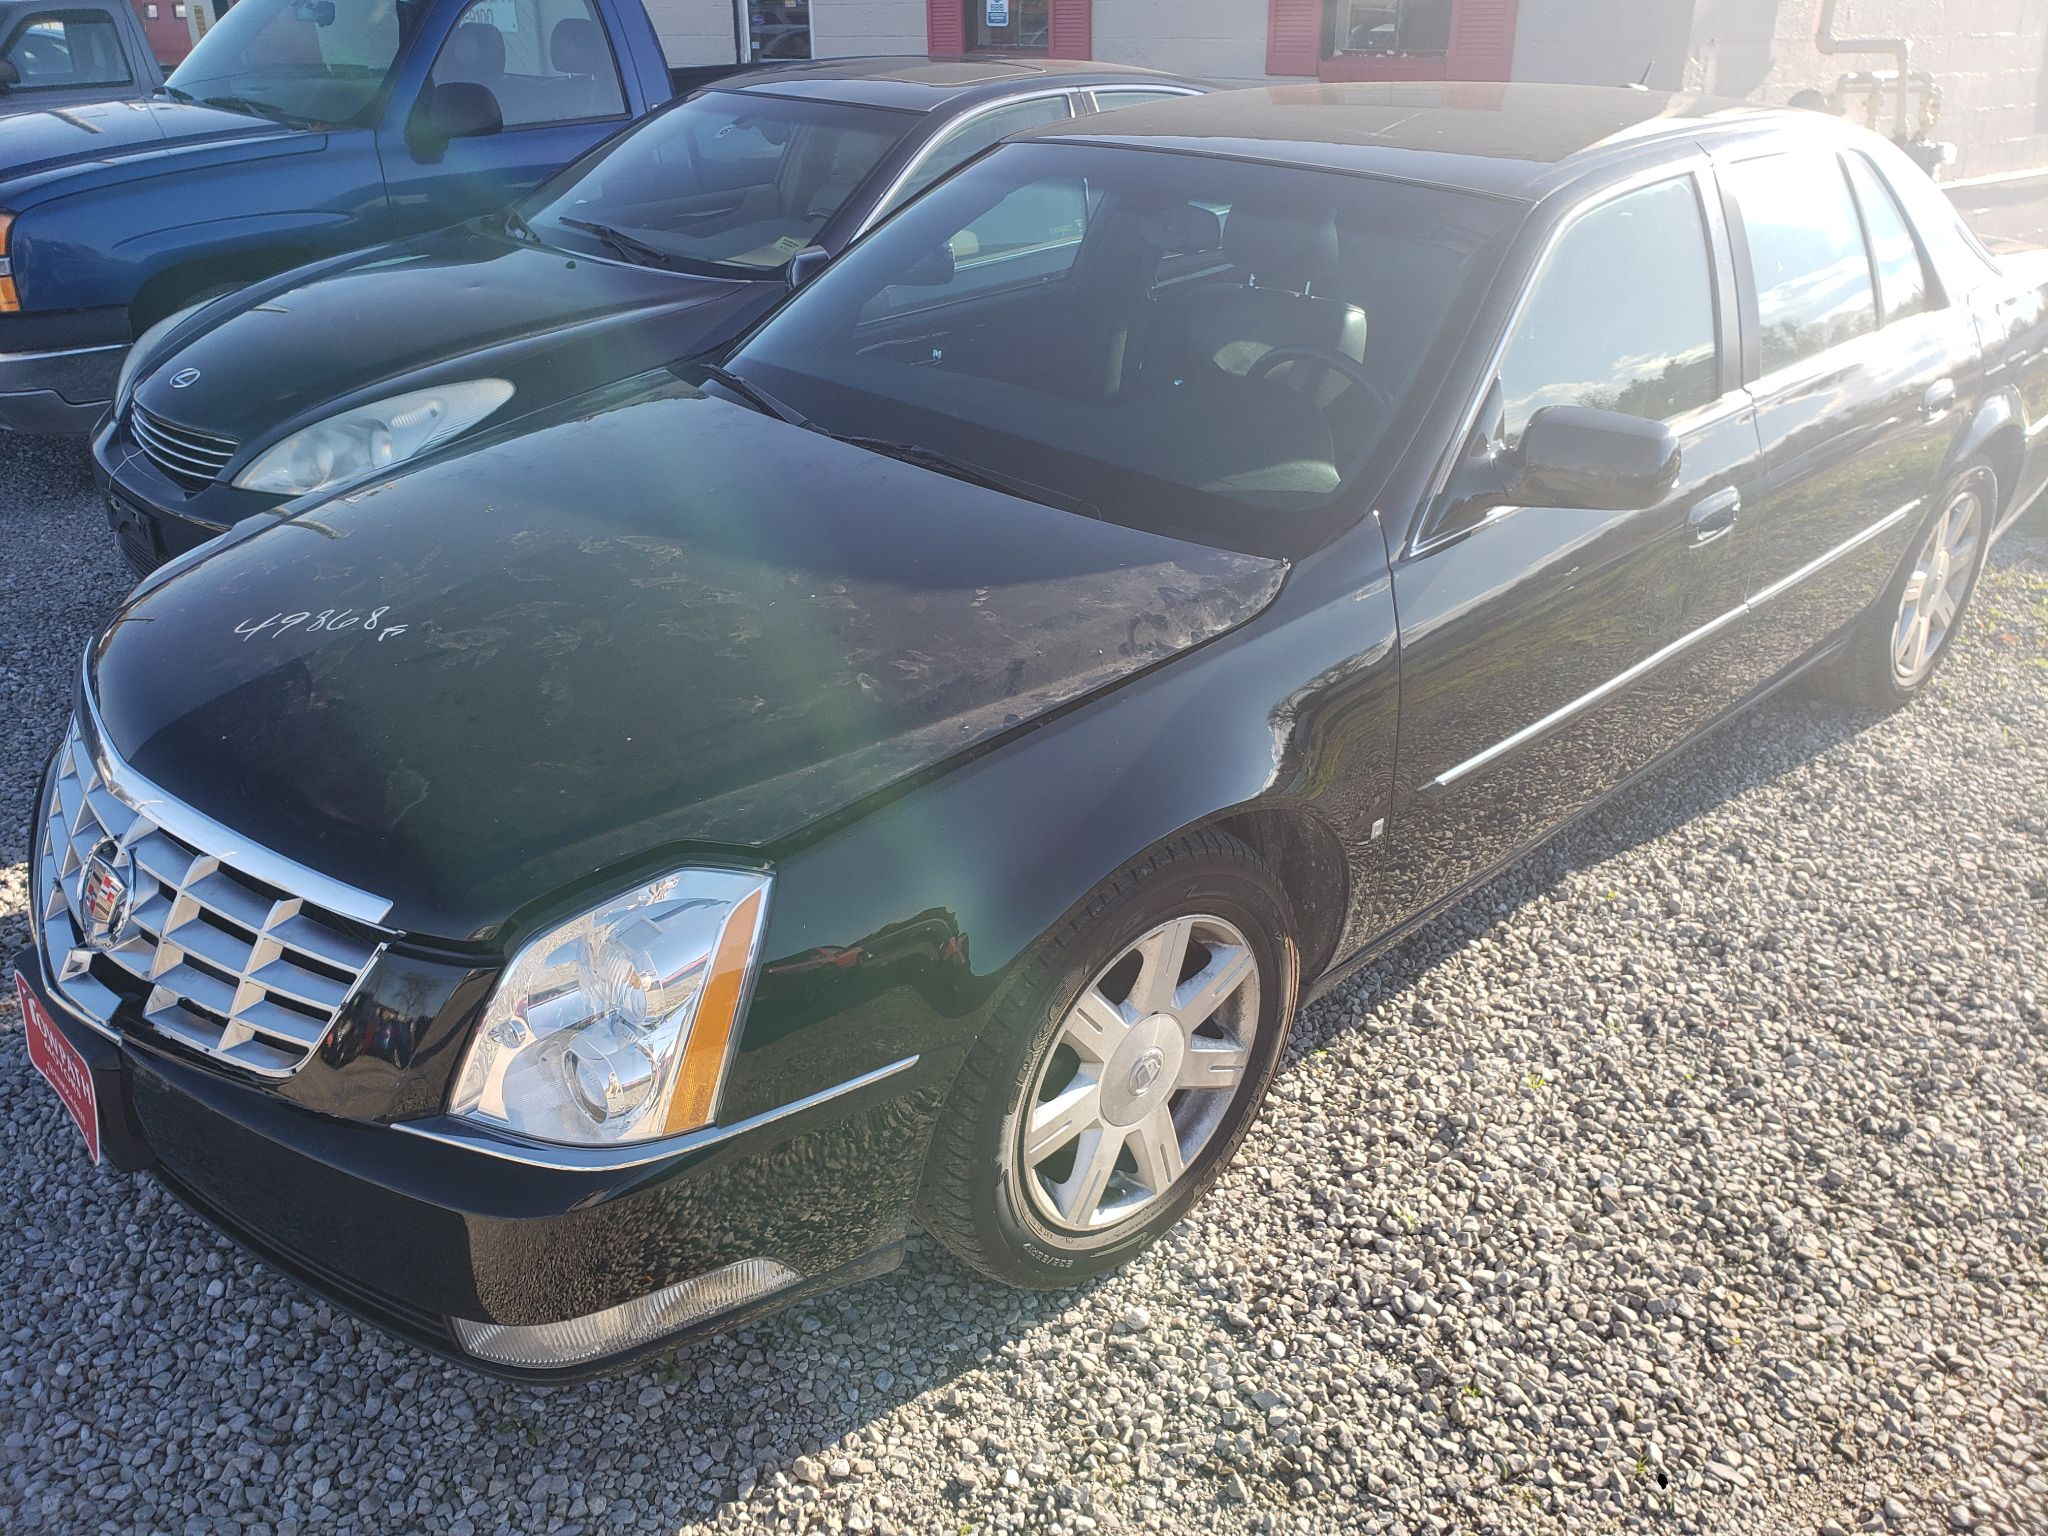 2007 Cadillac Dts for sale at Towpath Motors | Used Car Dealer in Peninsula Ohio